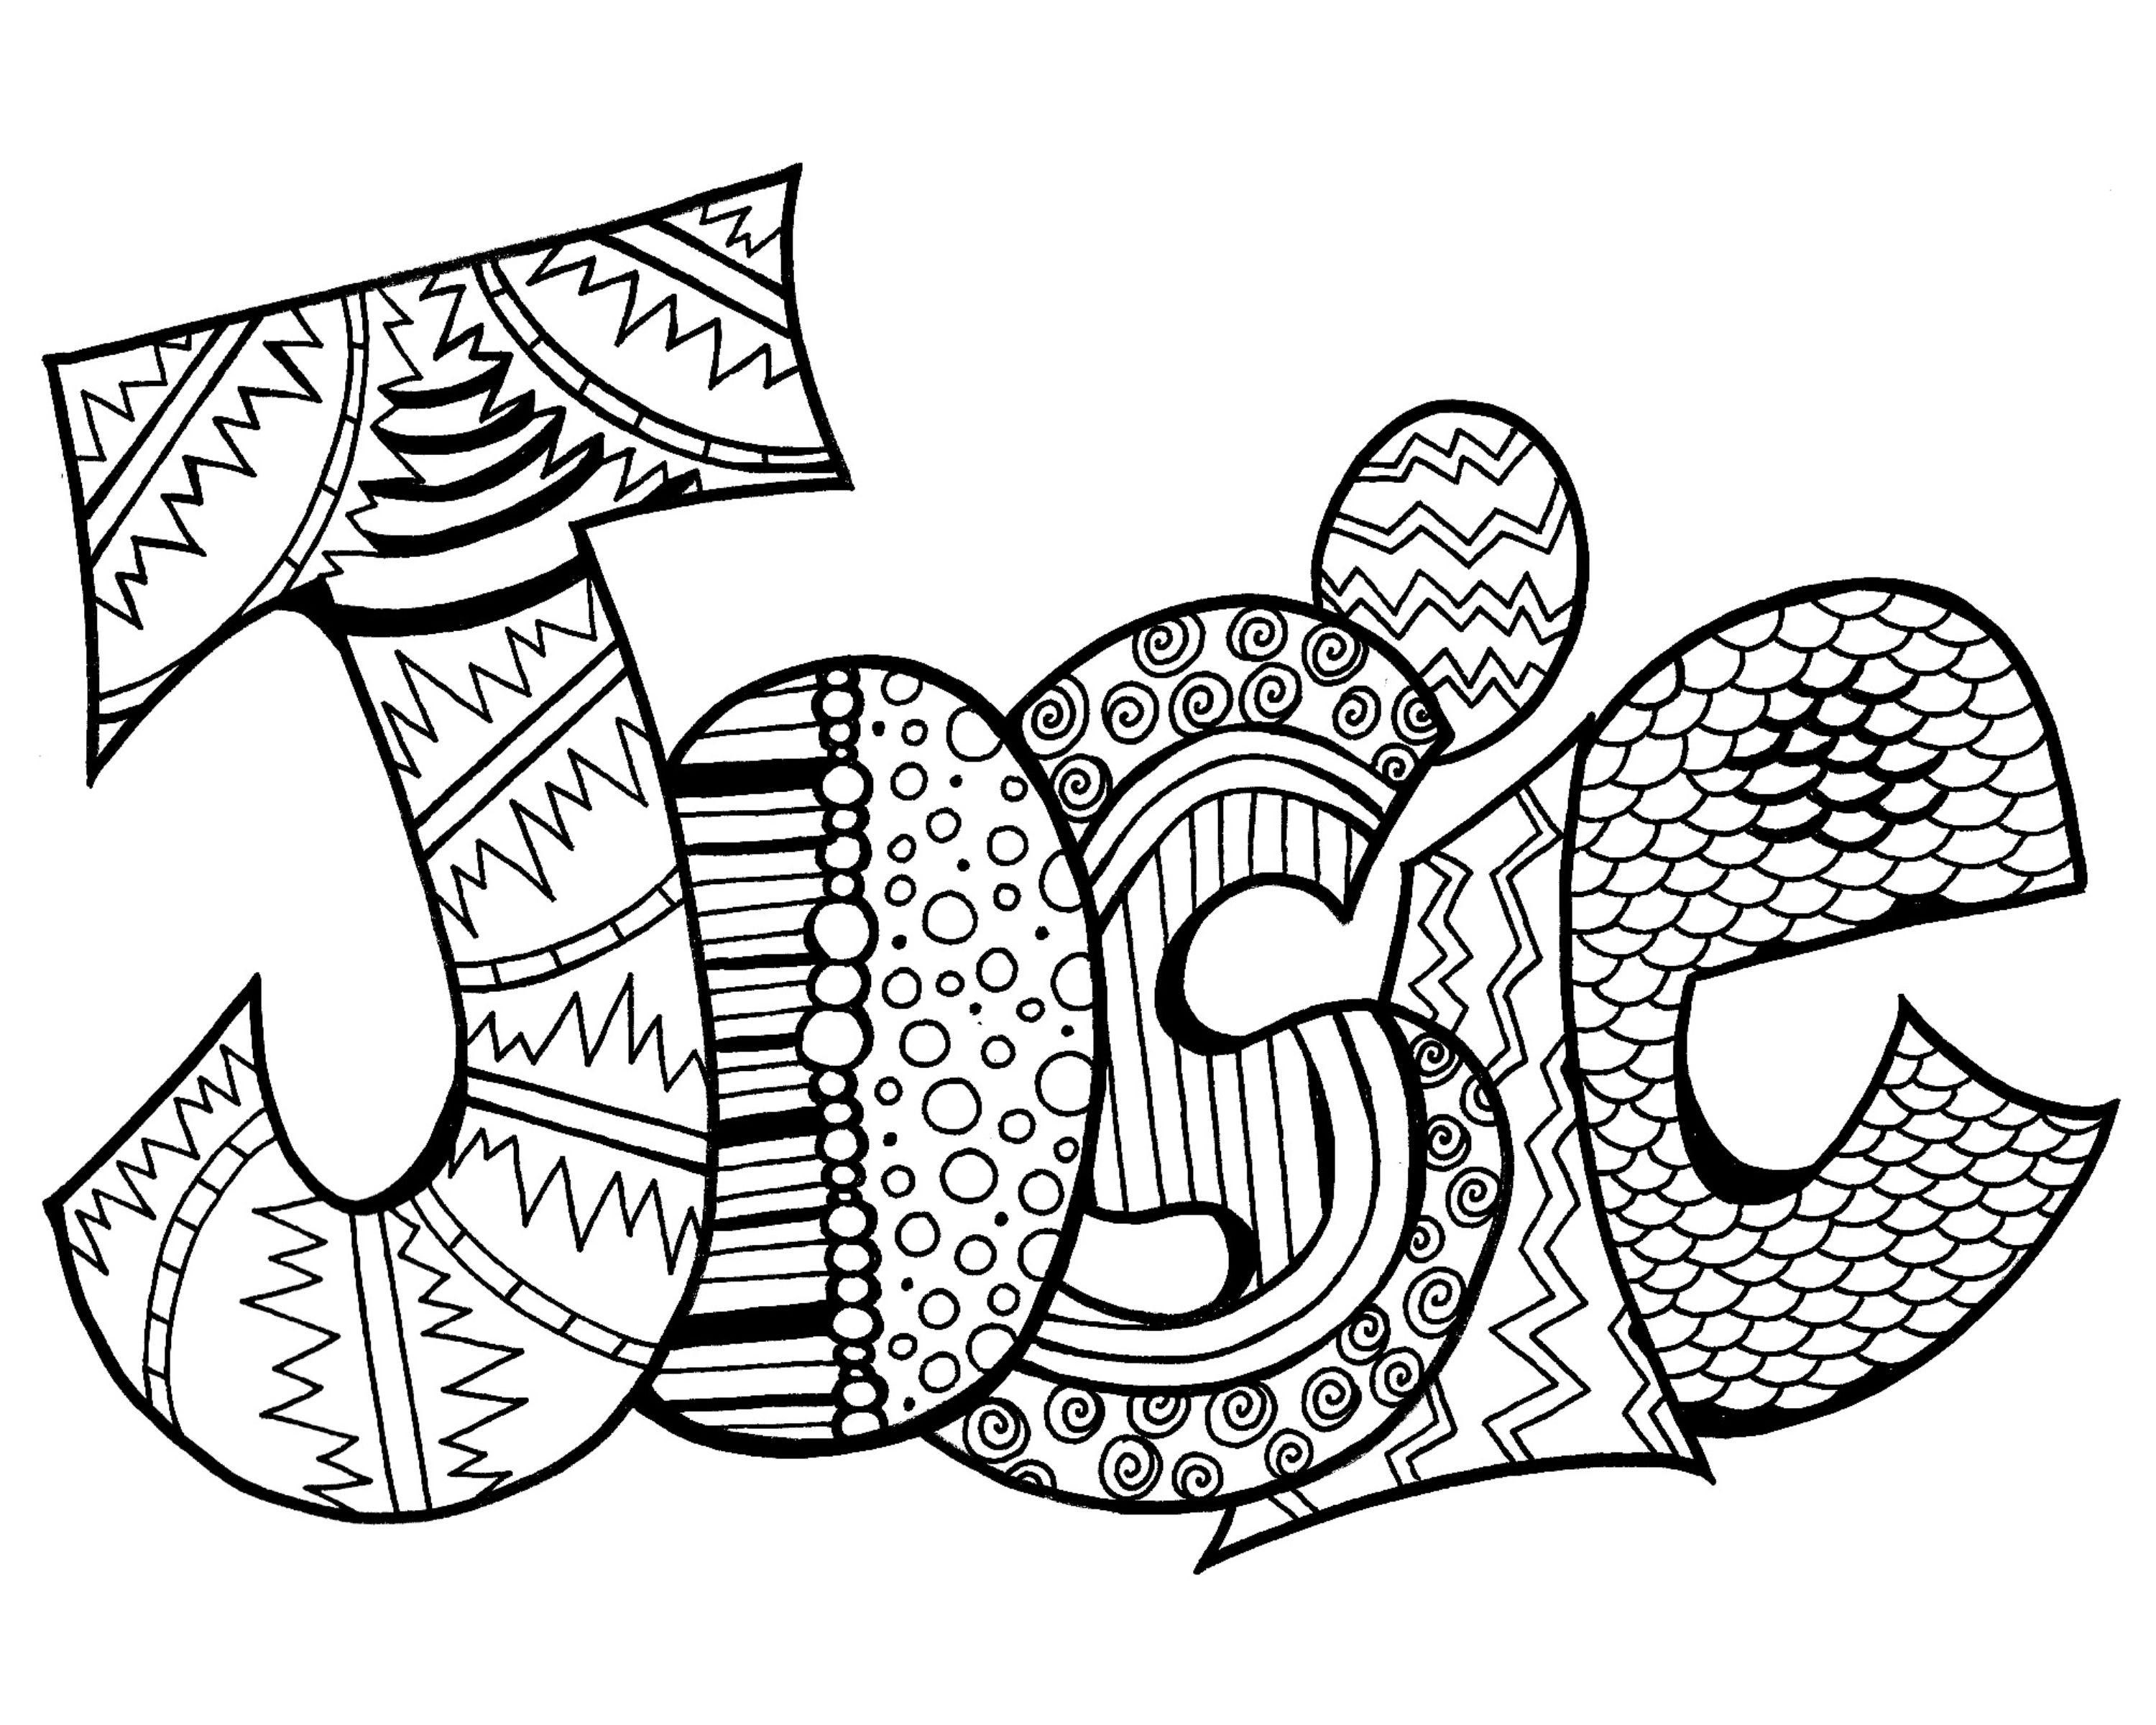 free personalized name coloring pages name templates coloring pages doodle art alley coloring pages free personalized name